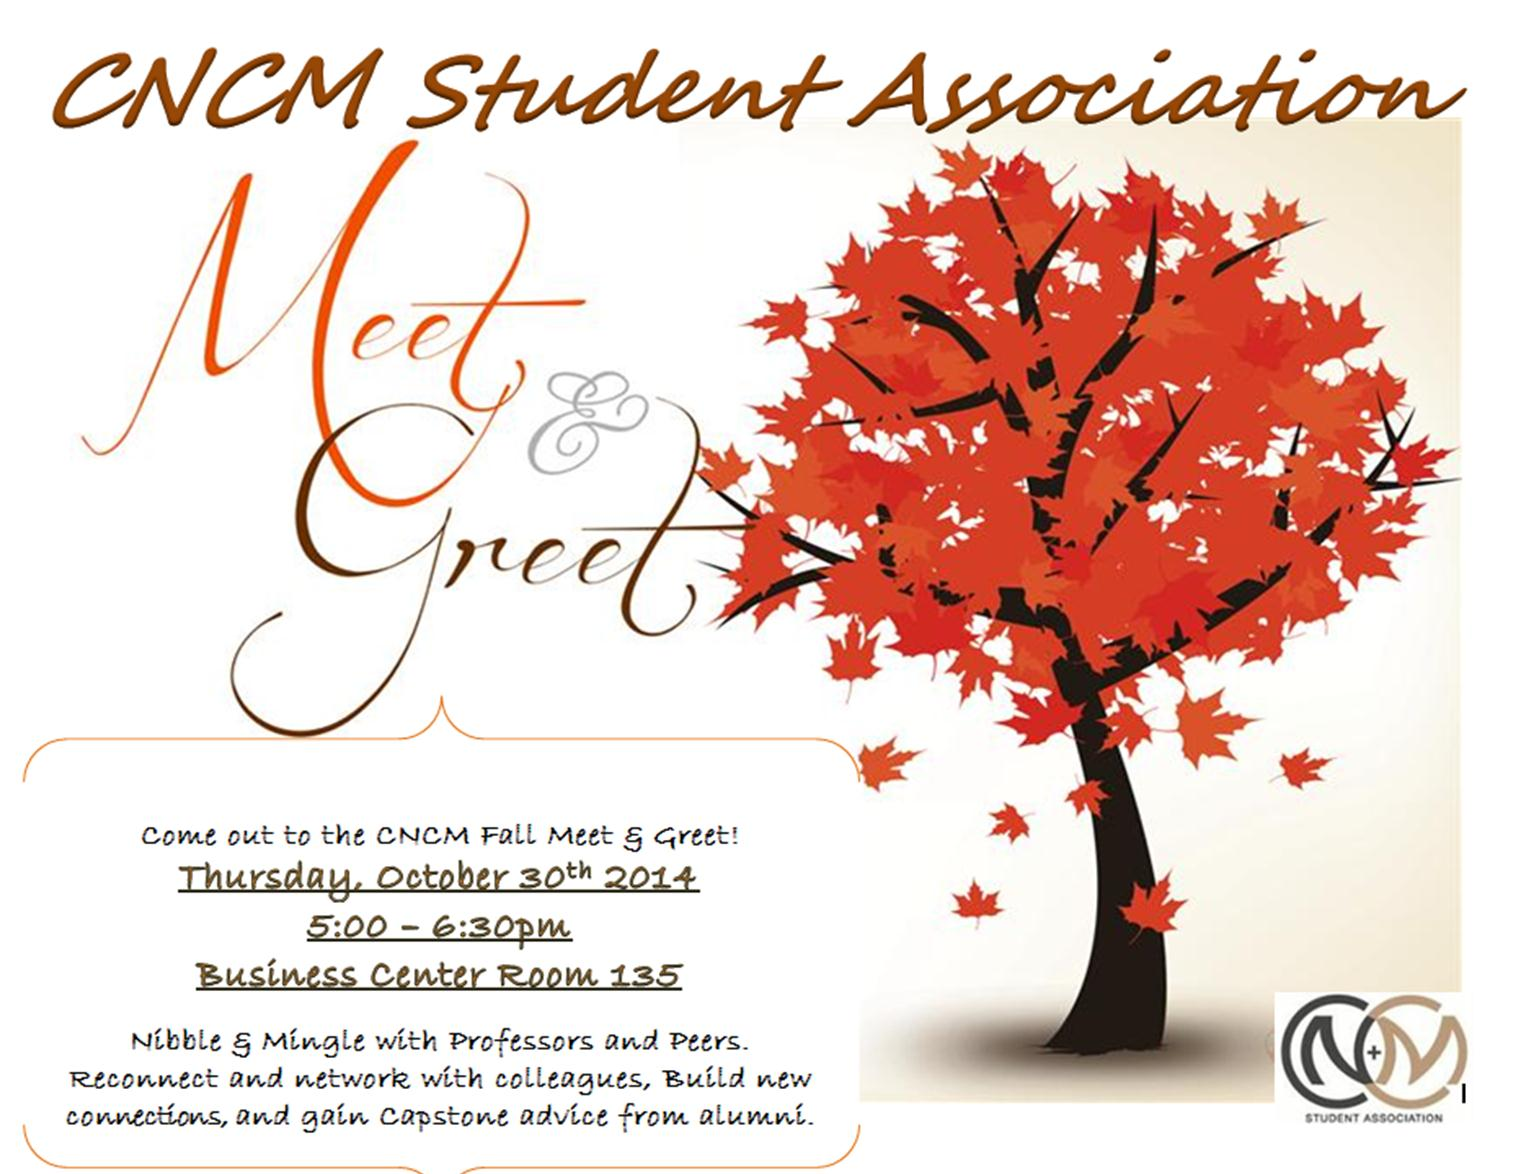 CNCM Fall Meet & Greet